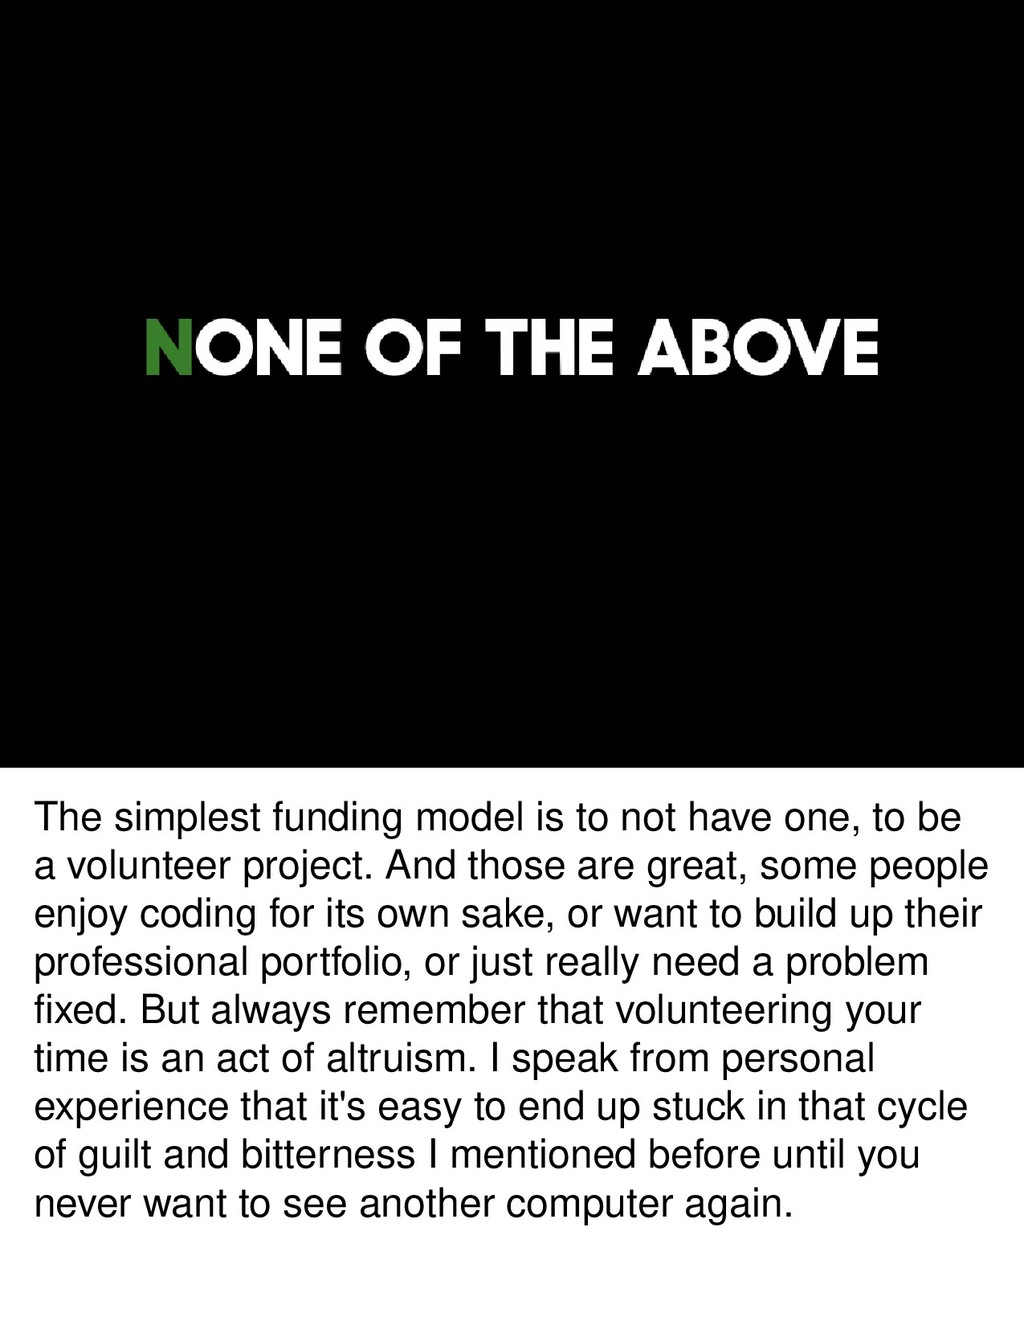 The simplest funding model is to not have one, ...